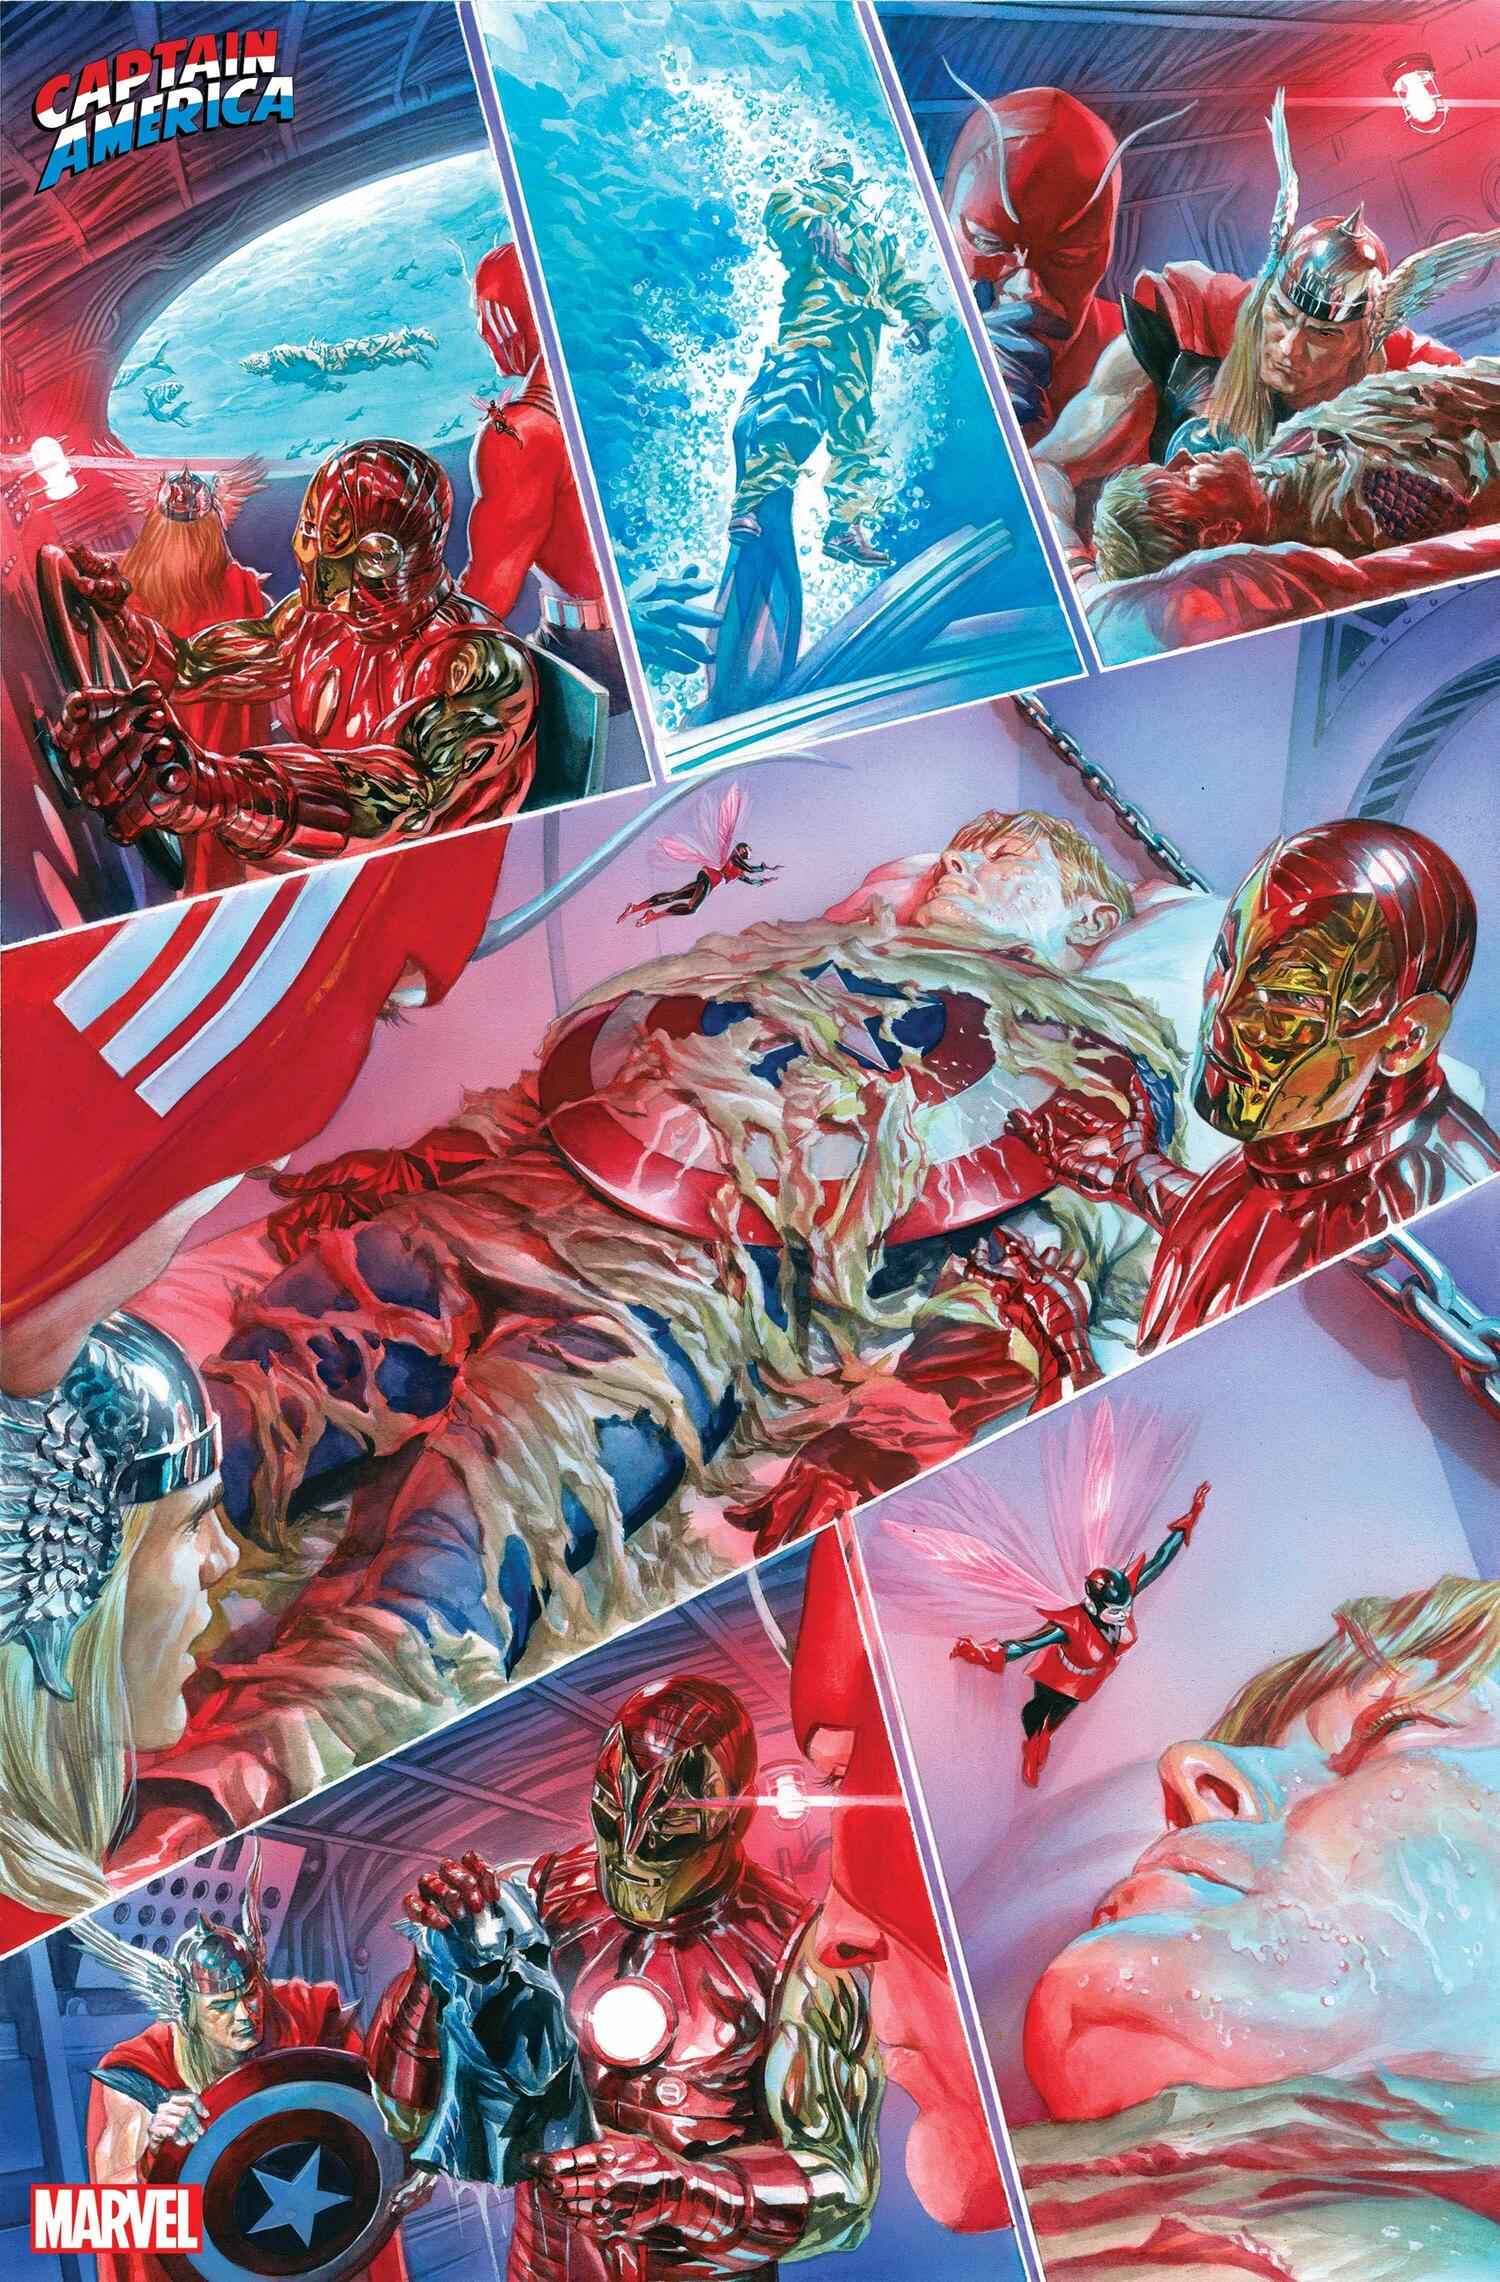 CAPTAIN AMERICA TRIBUTE #1 preview art by Alex Ross